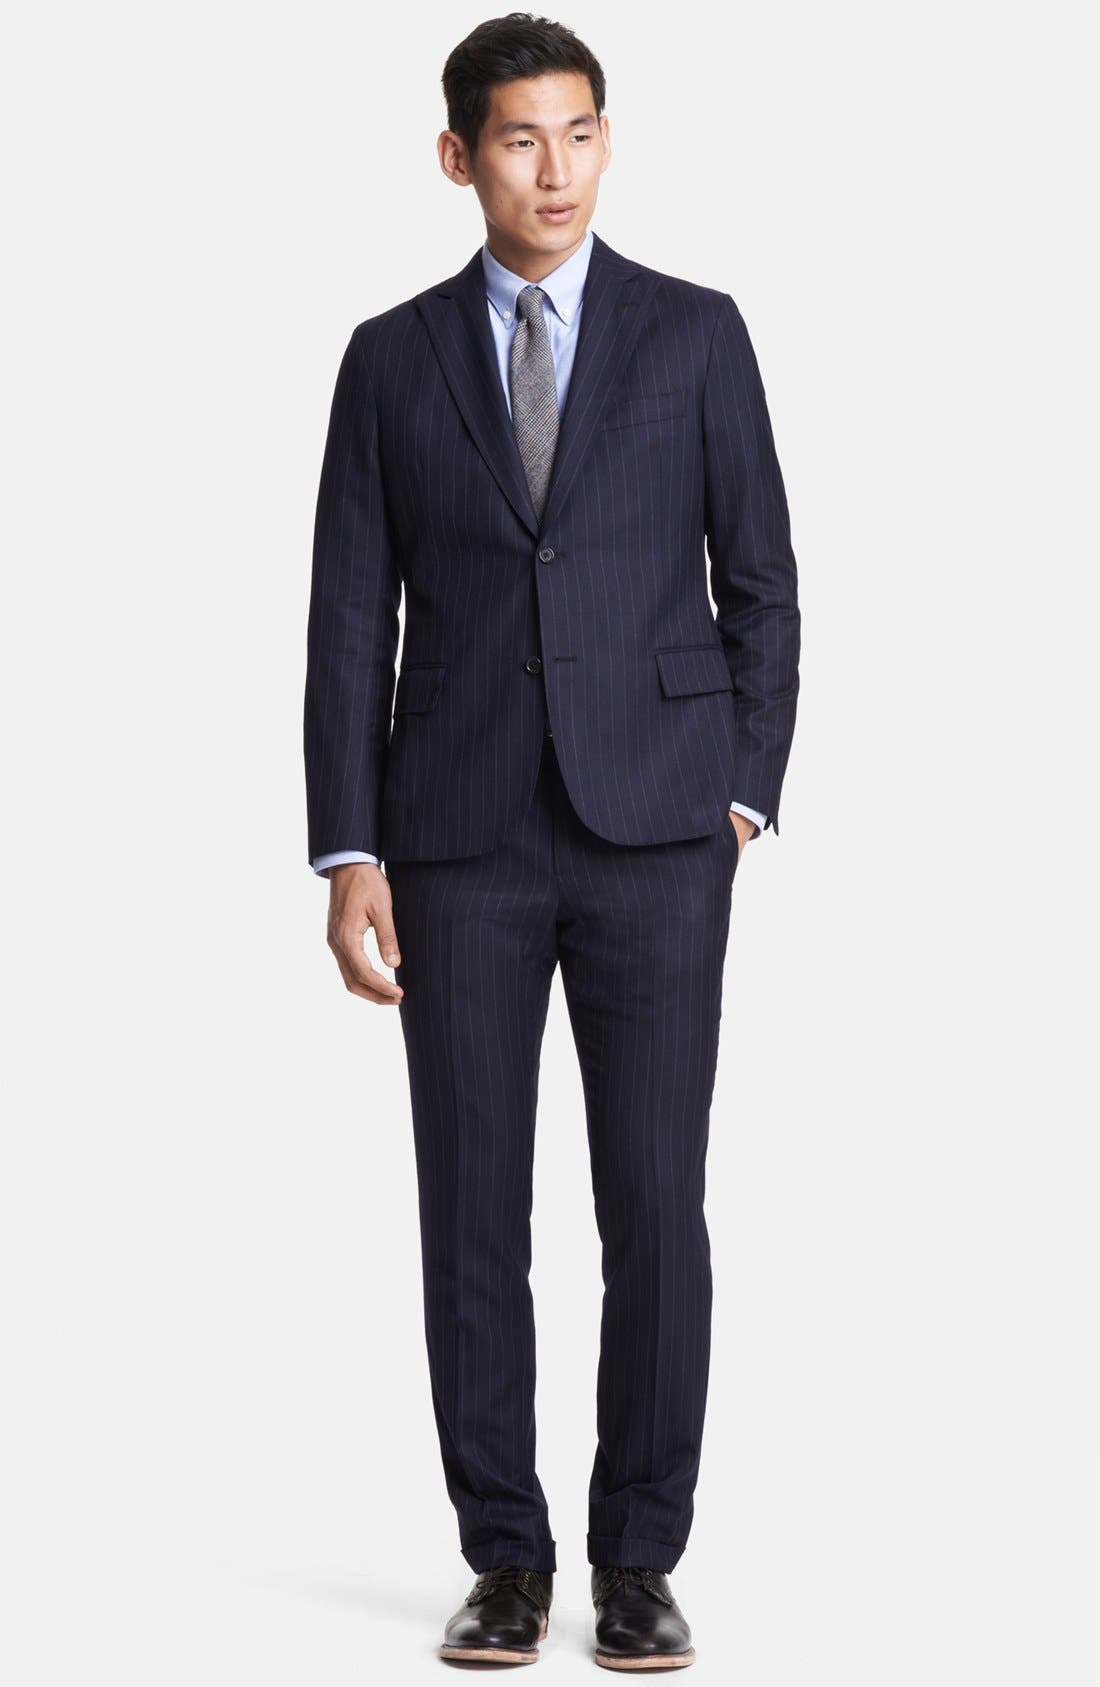 Main Image - Todd Snyder Navy Pinstripe Wool Suit